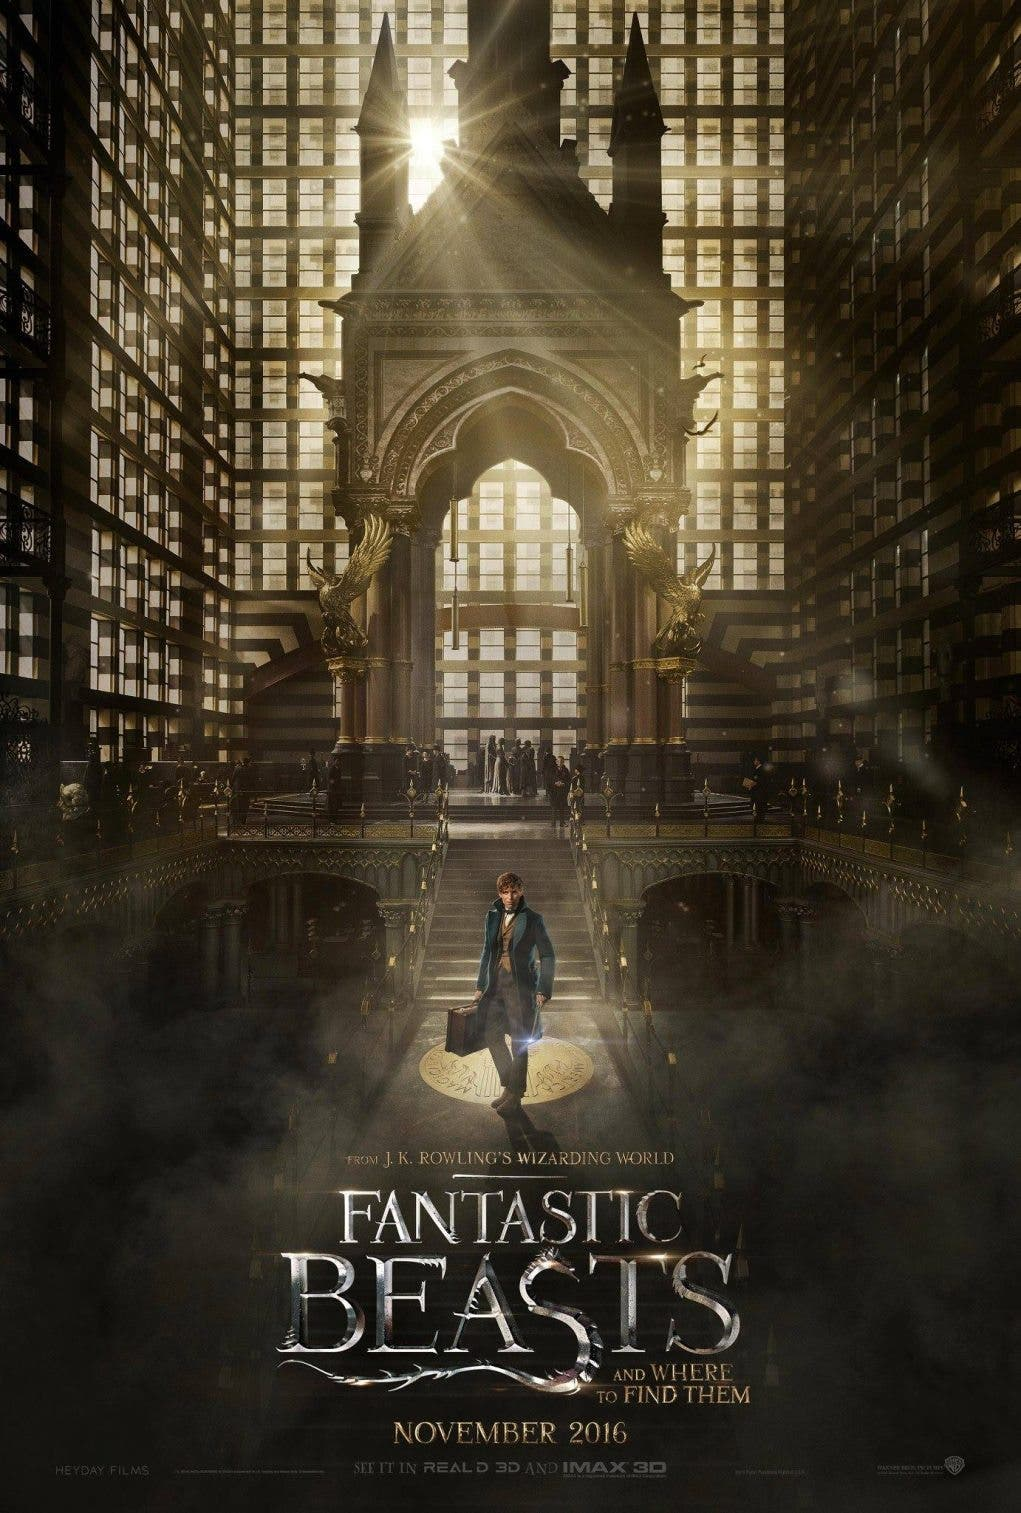 Fantastic Beasts and Where to Find Them (poster)